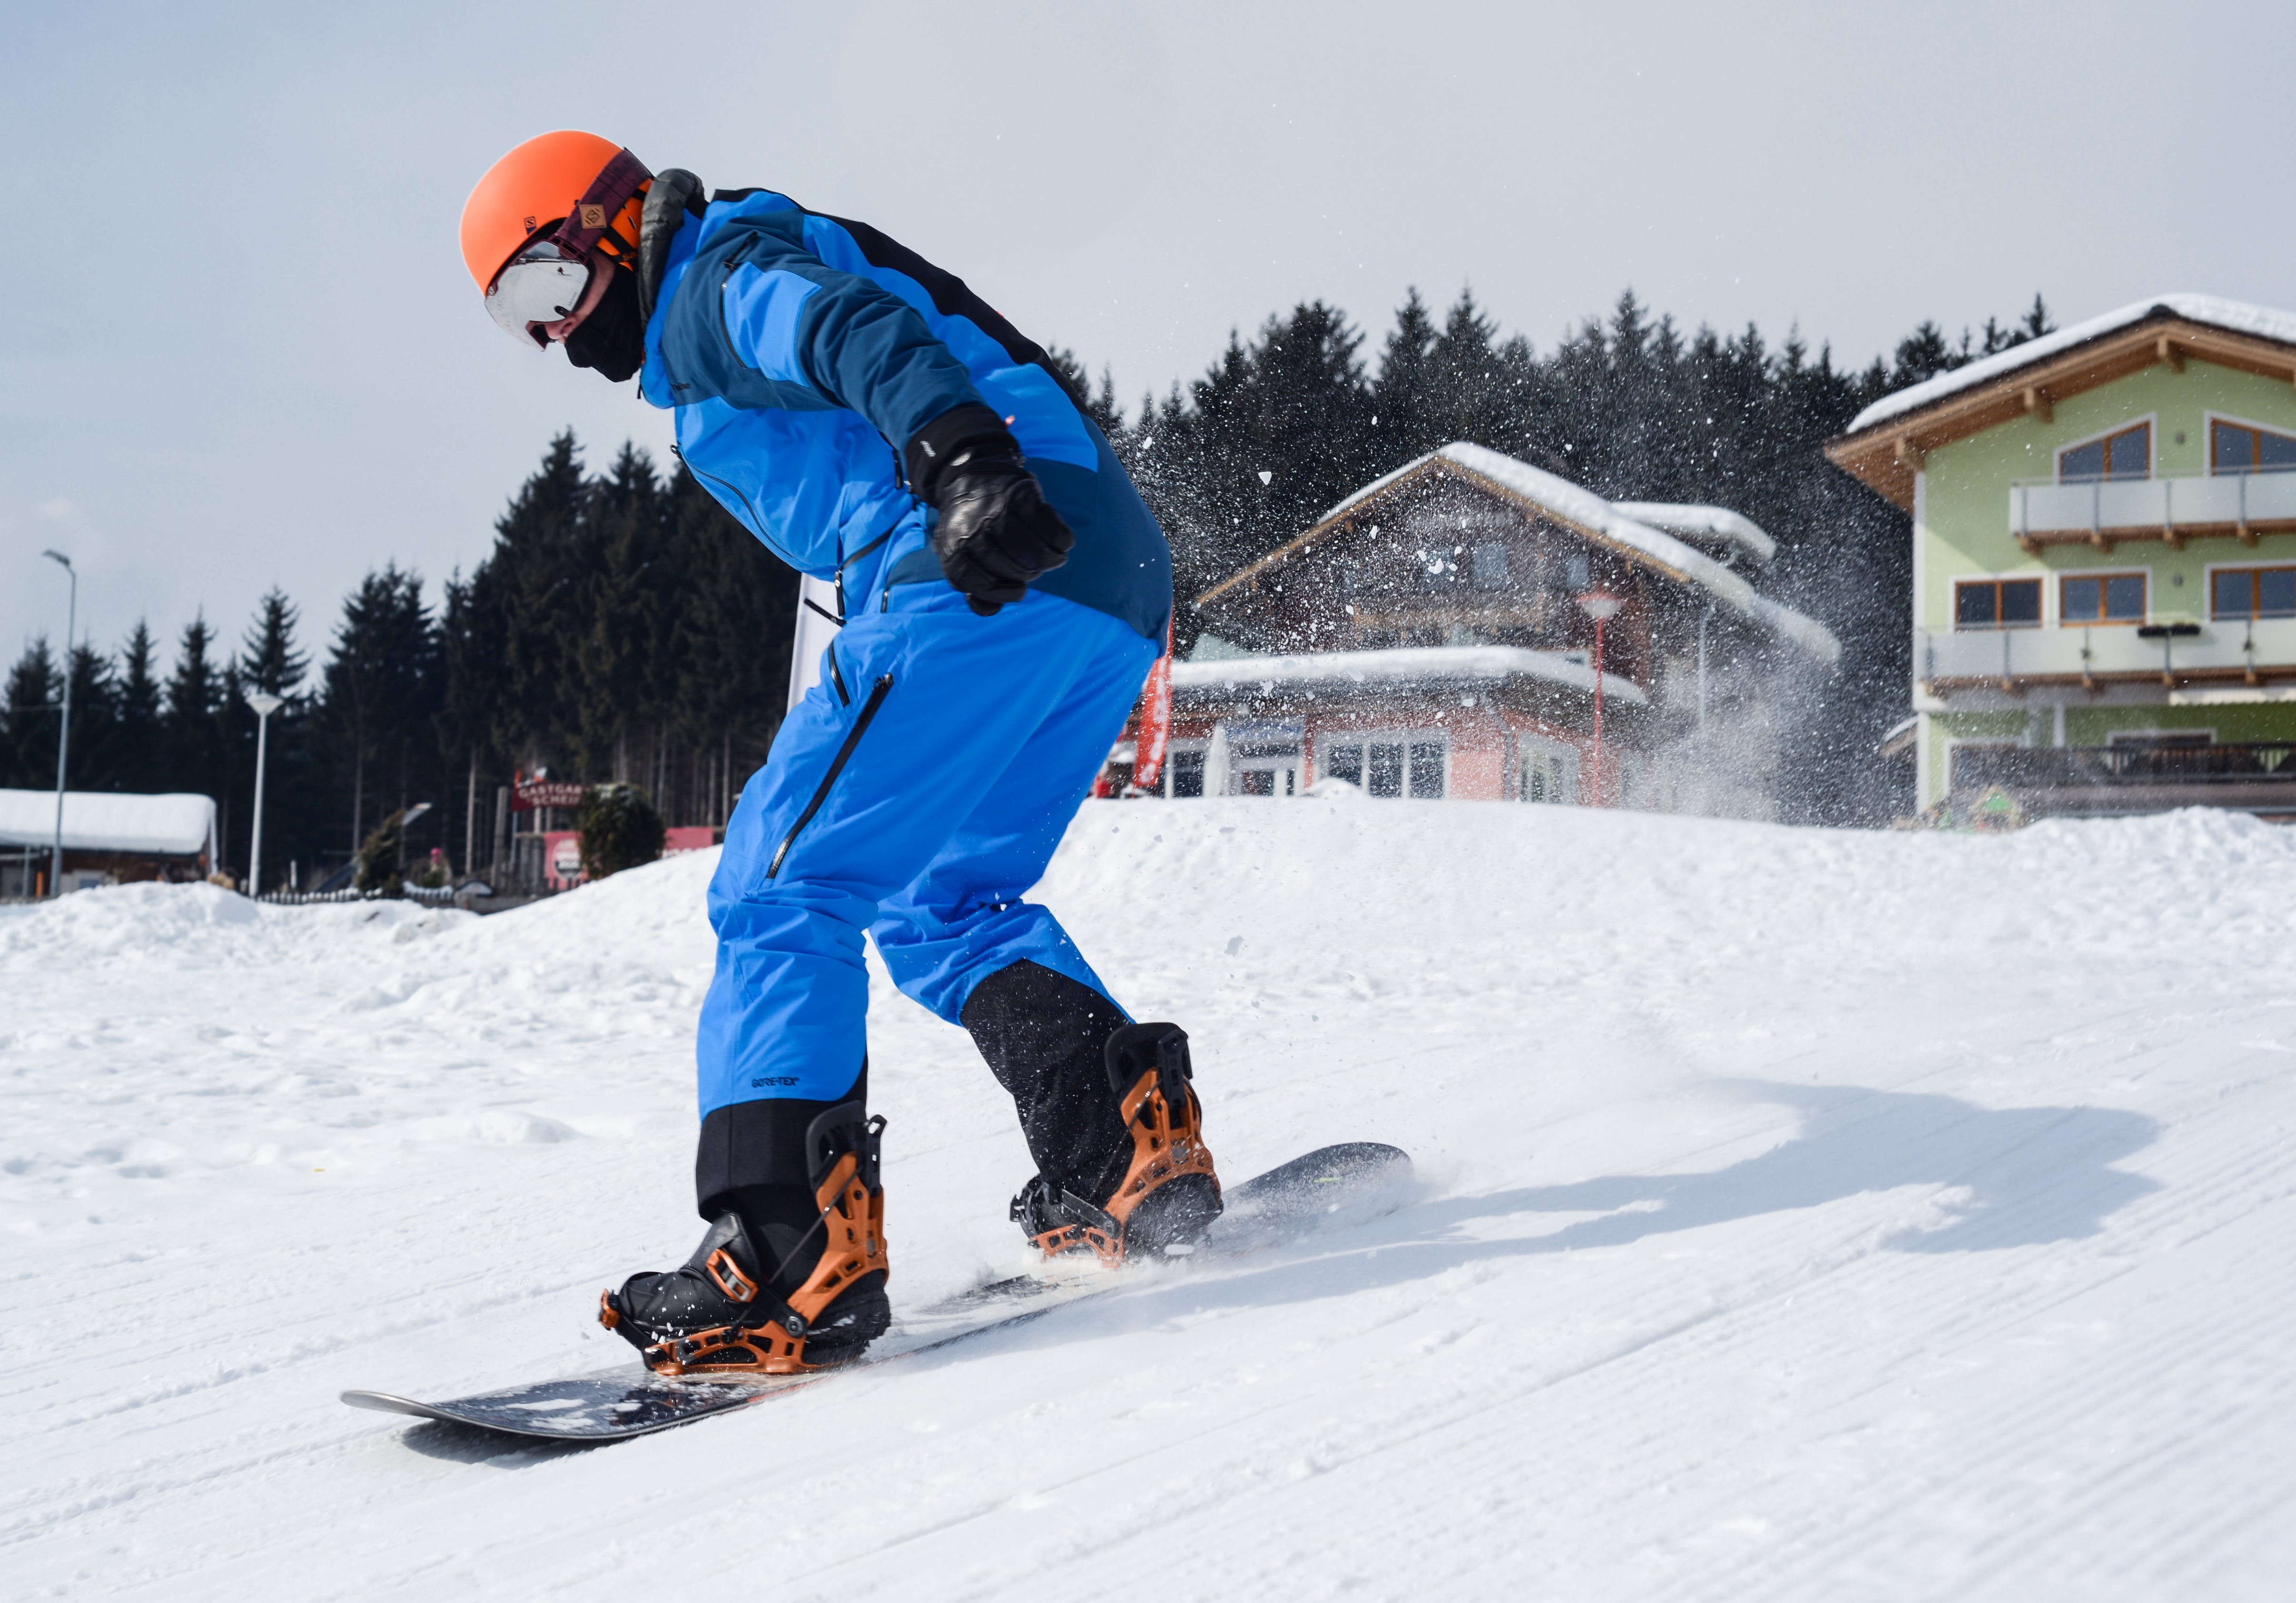 Person in Blue Coveralls Snowboarding on Snow